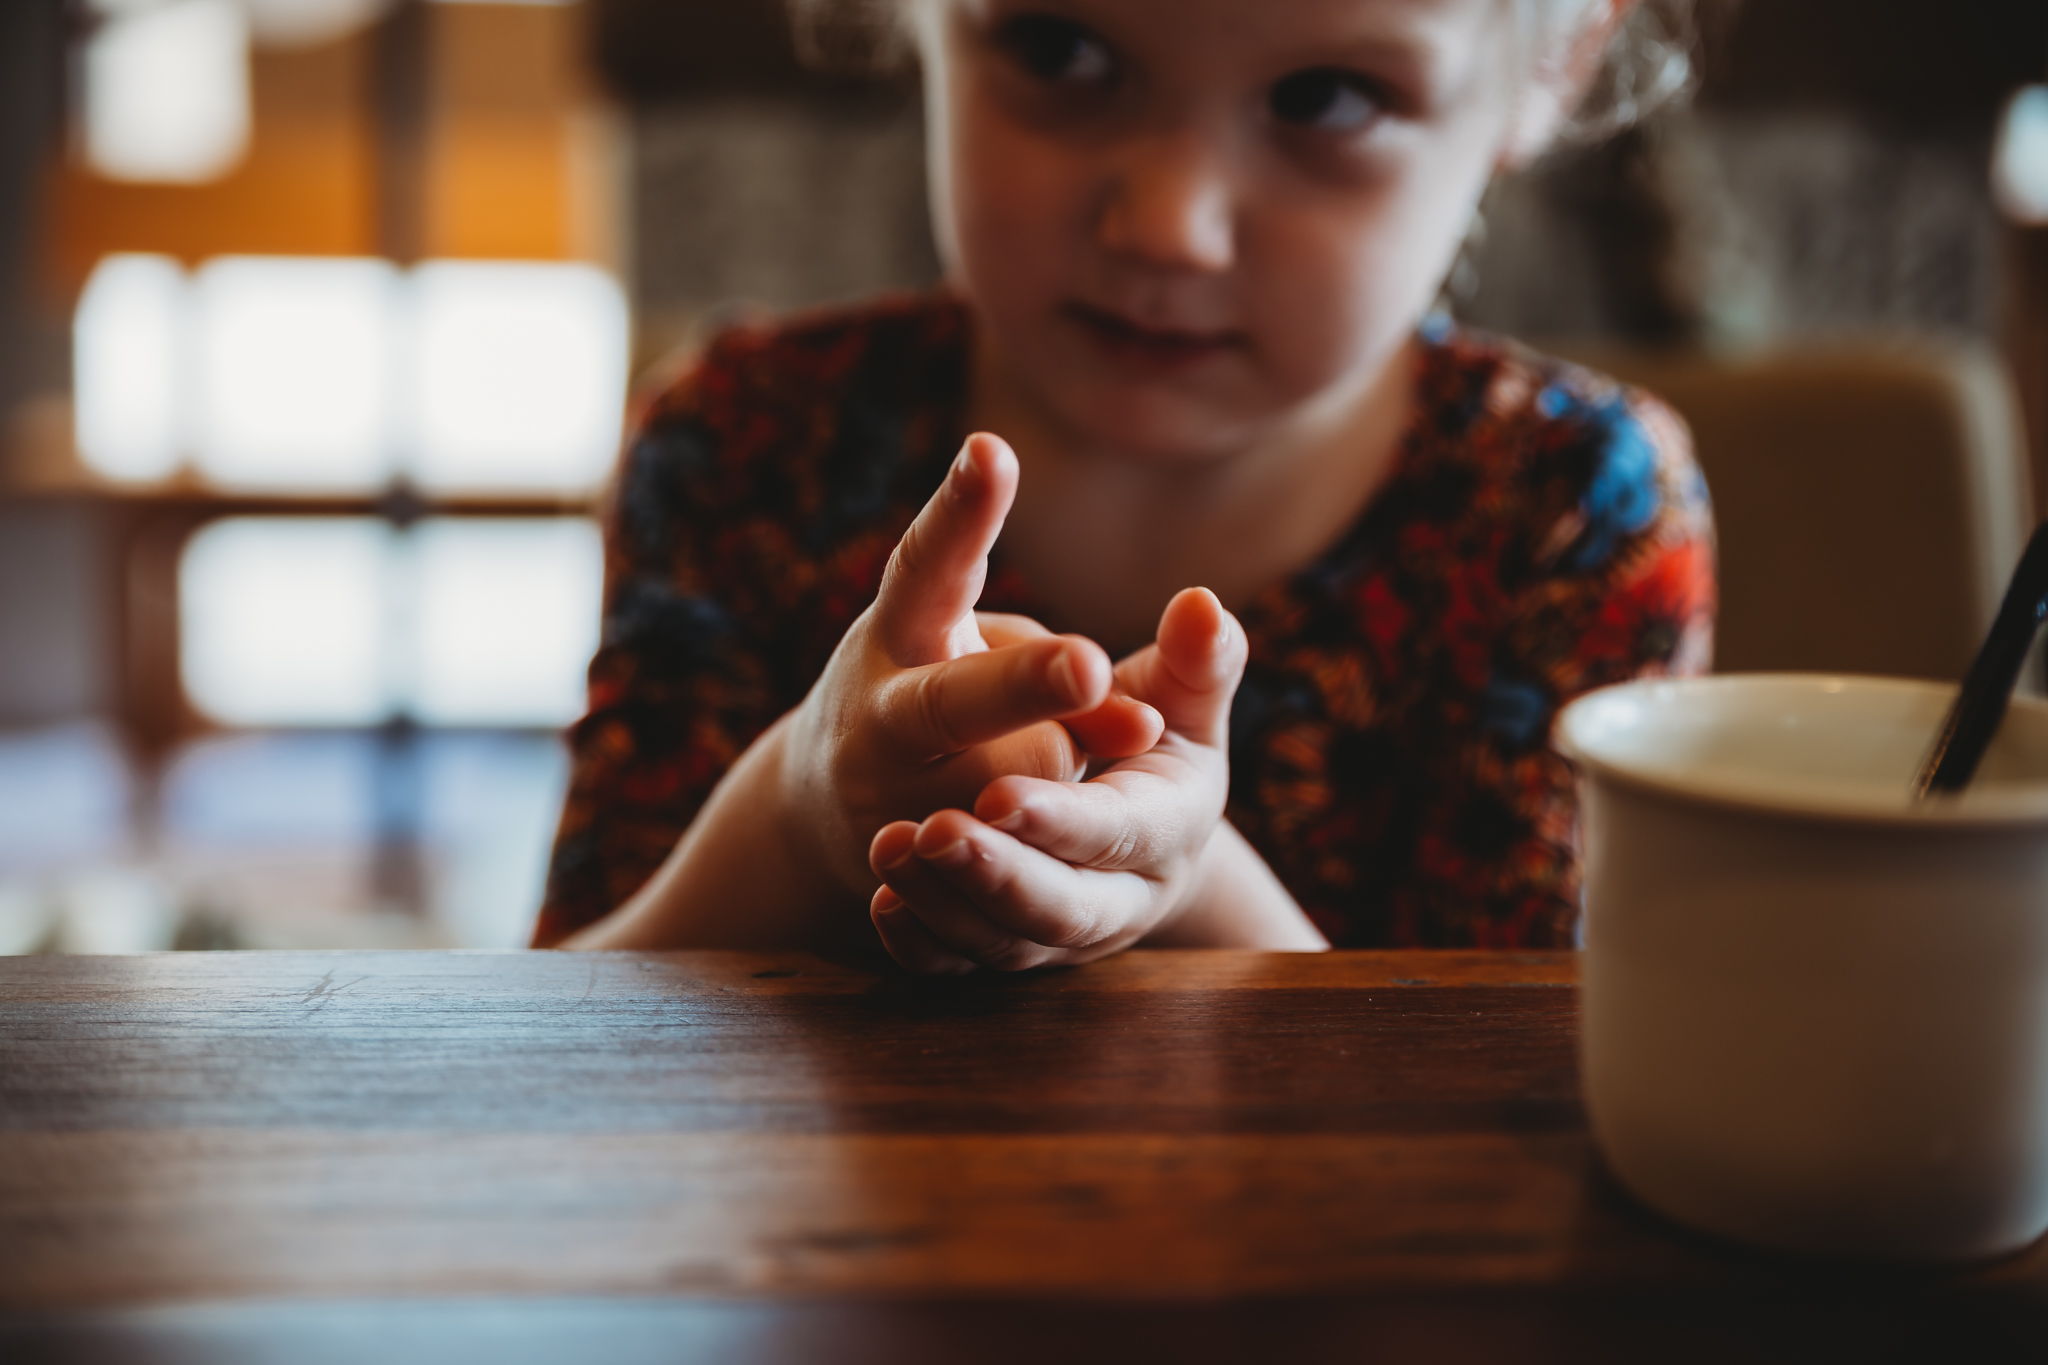 Rock Paper Scissors is one of our favorite things to do when waiting at a restaurant